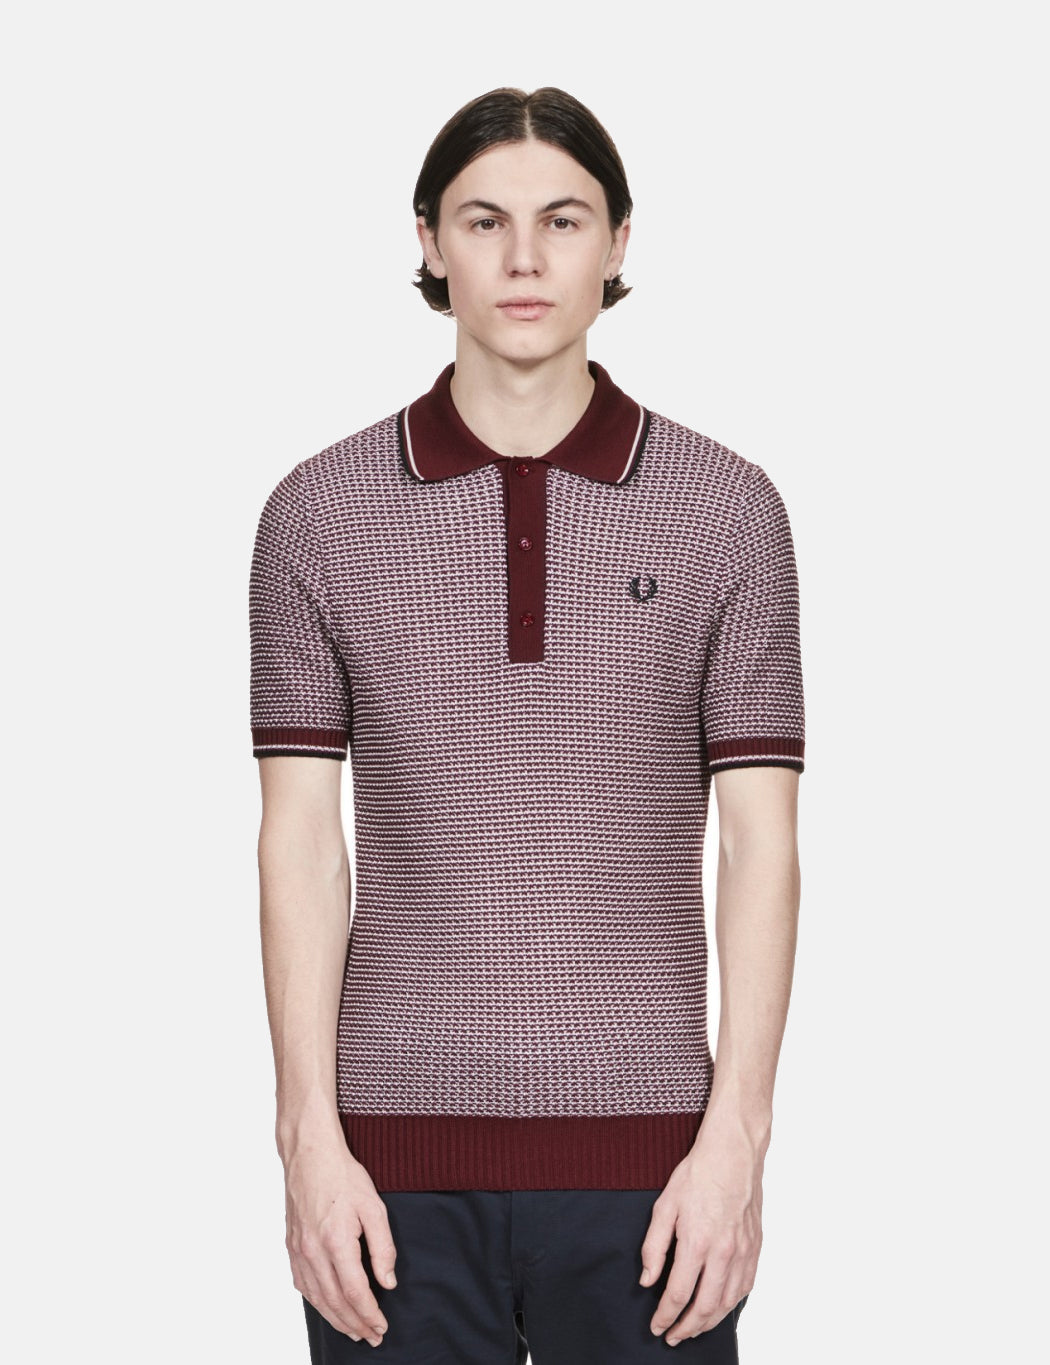 7c38c302 Fred Perry Re-issues Two Colour Knit Shirt - Maroon | URBAN EXCESS.